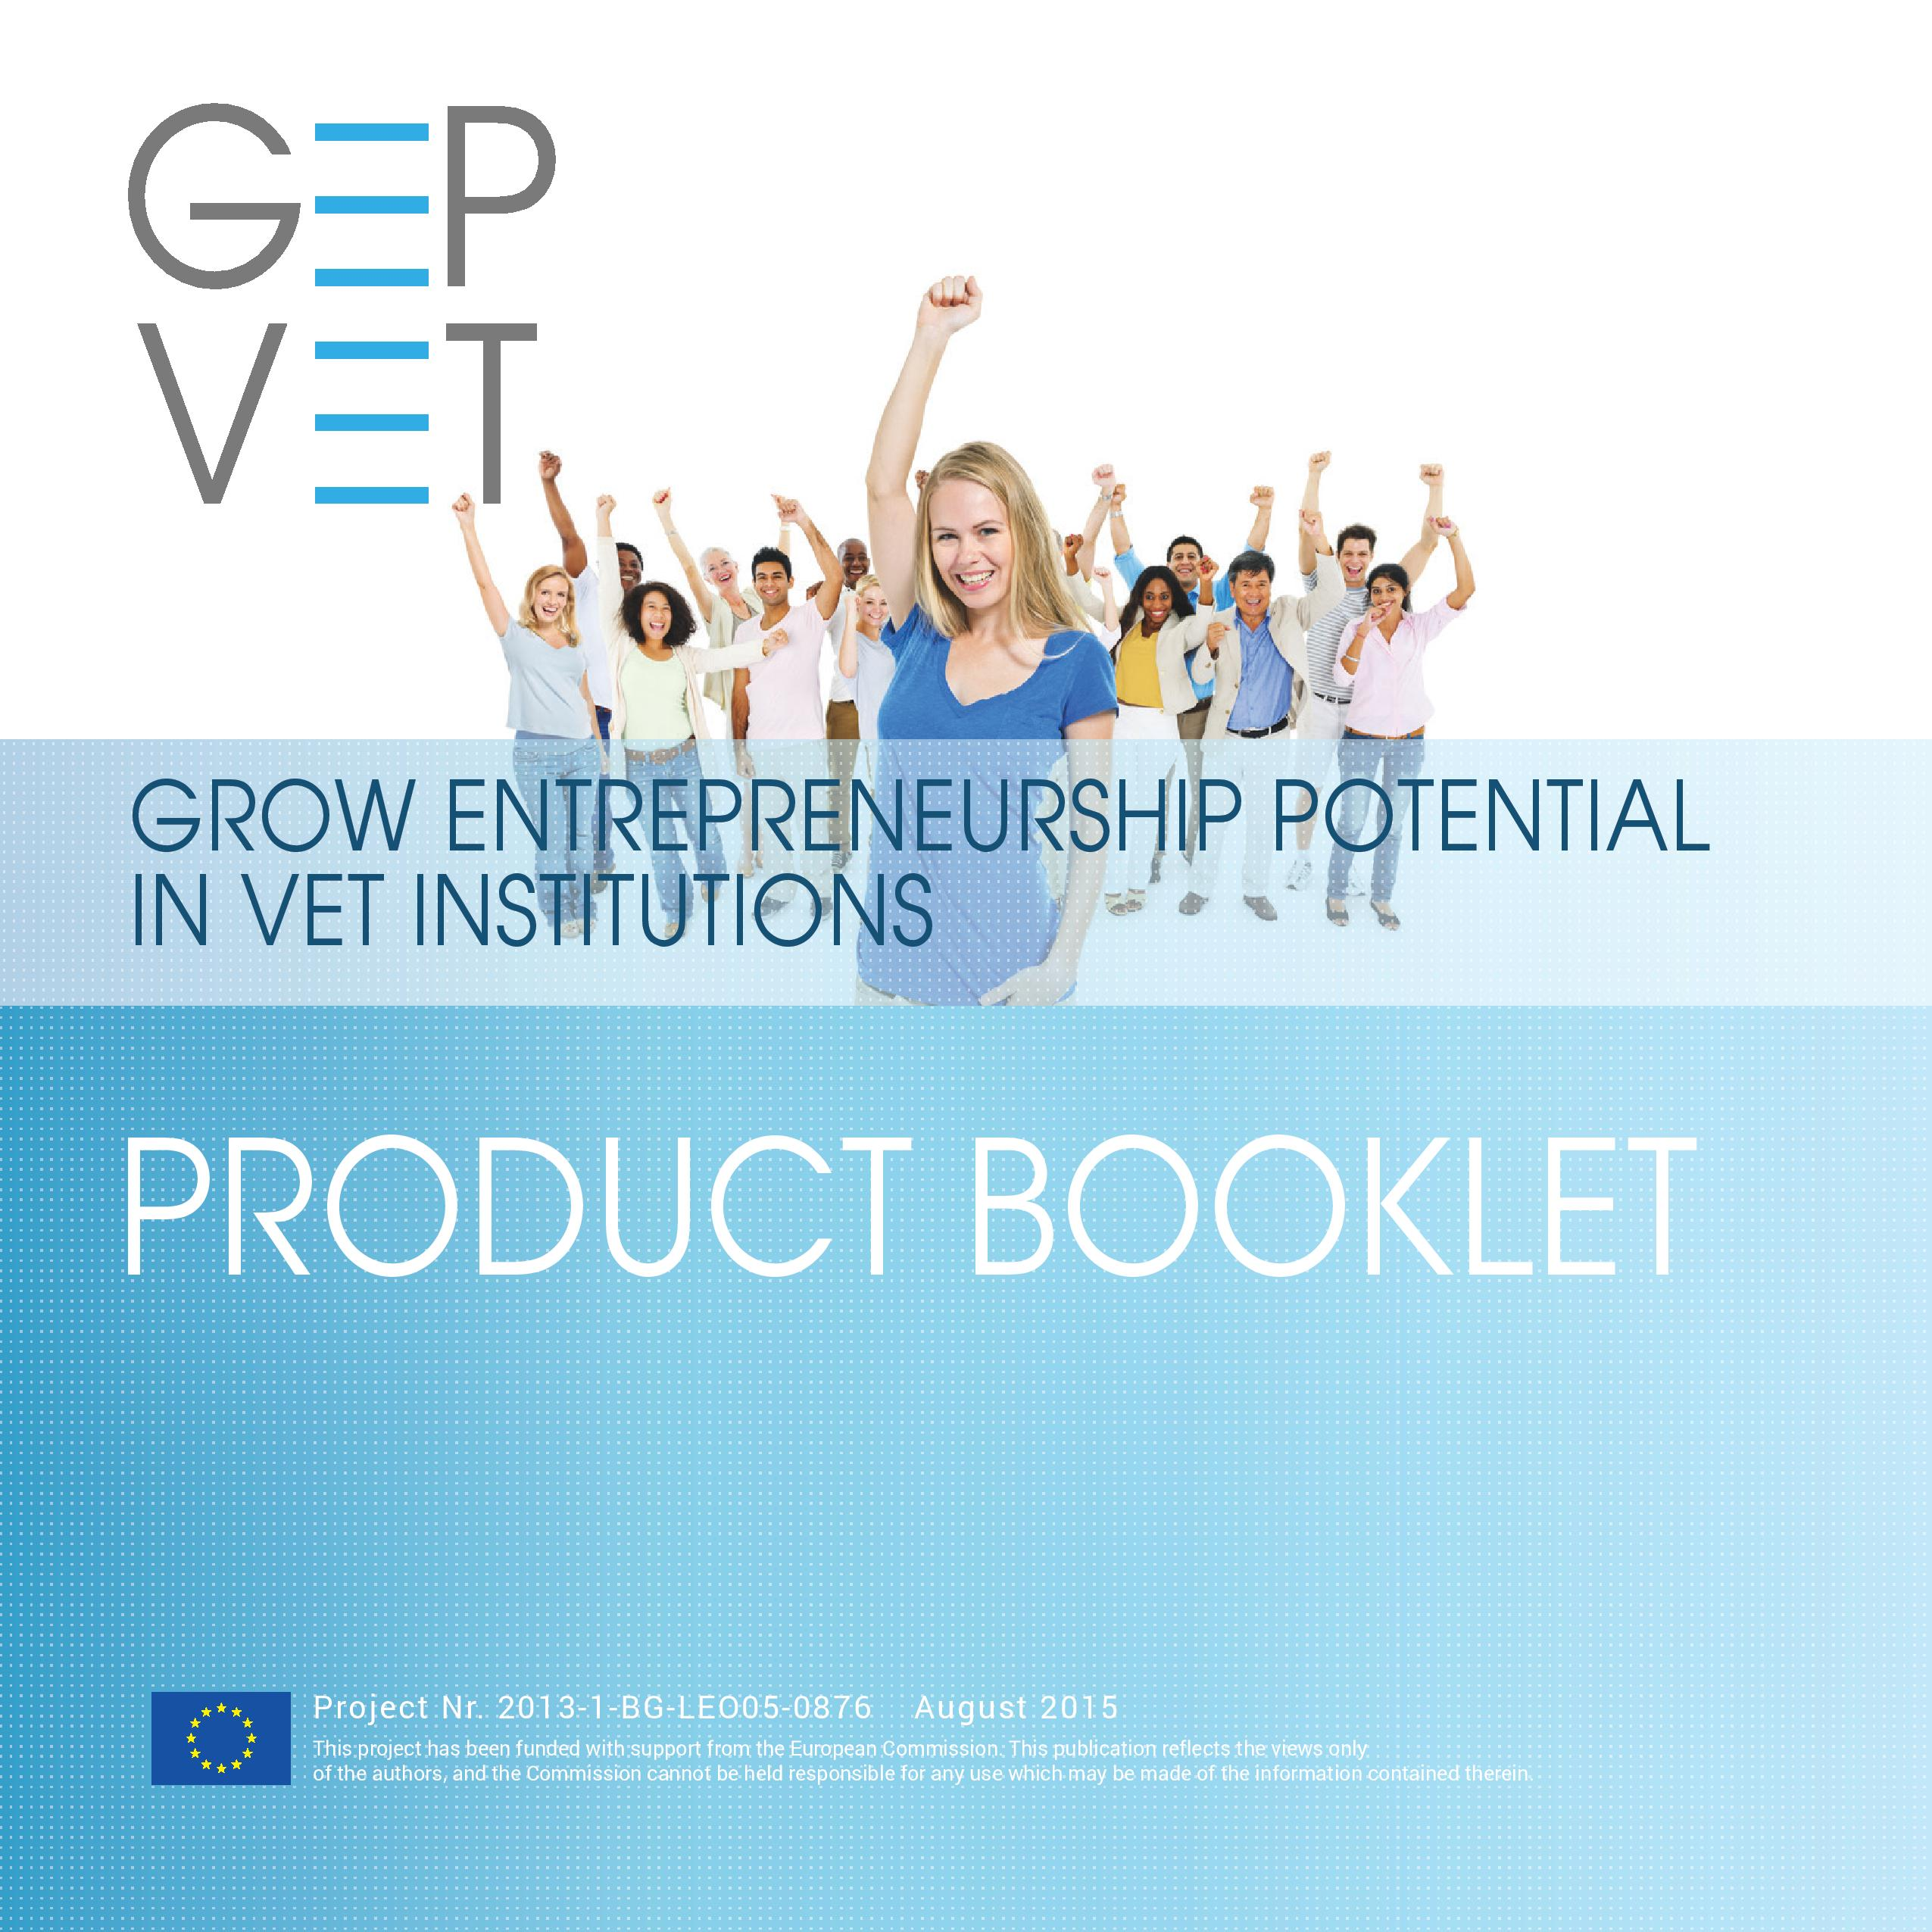 GEPVET Product Booklet